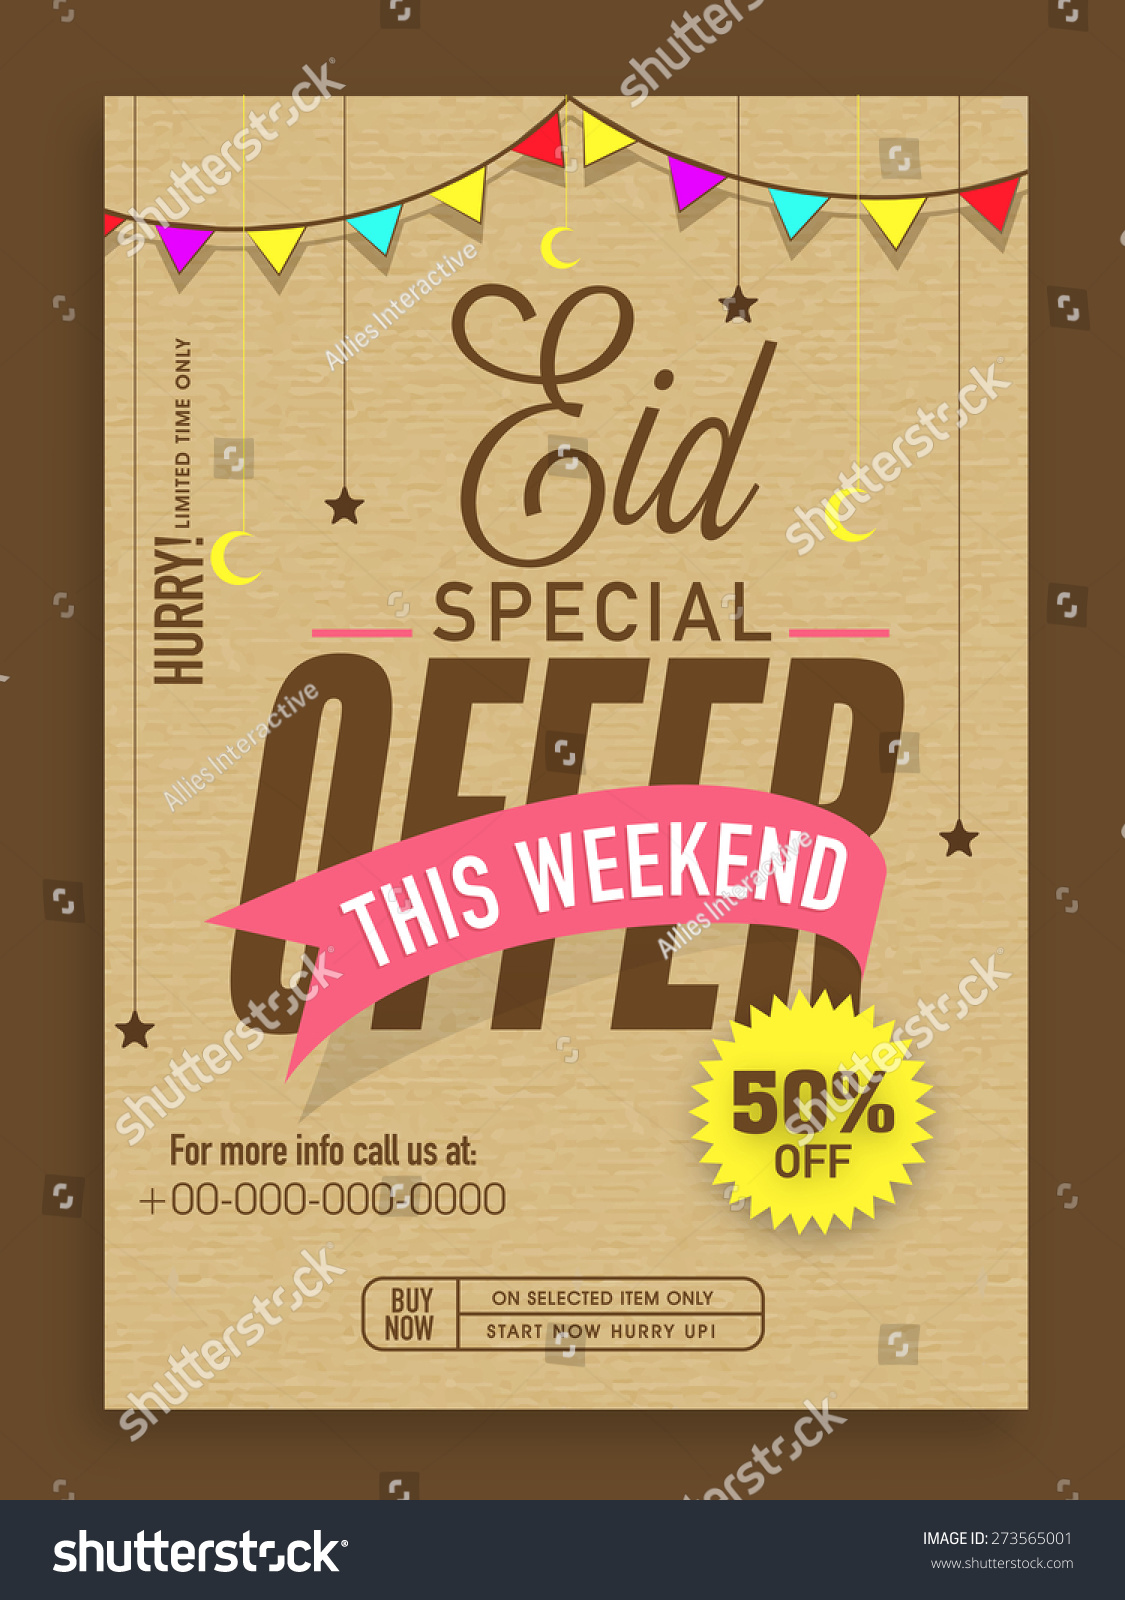 eid special offer template banner or flyer design decorated with colorful bunting moons and. Black Bedroom Furniture Sets. Home Design Ideas